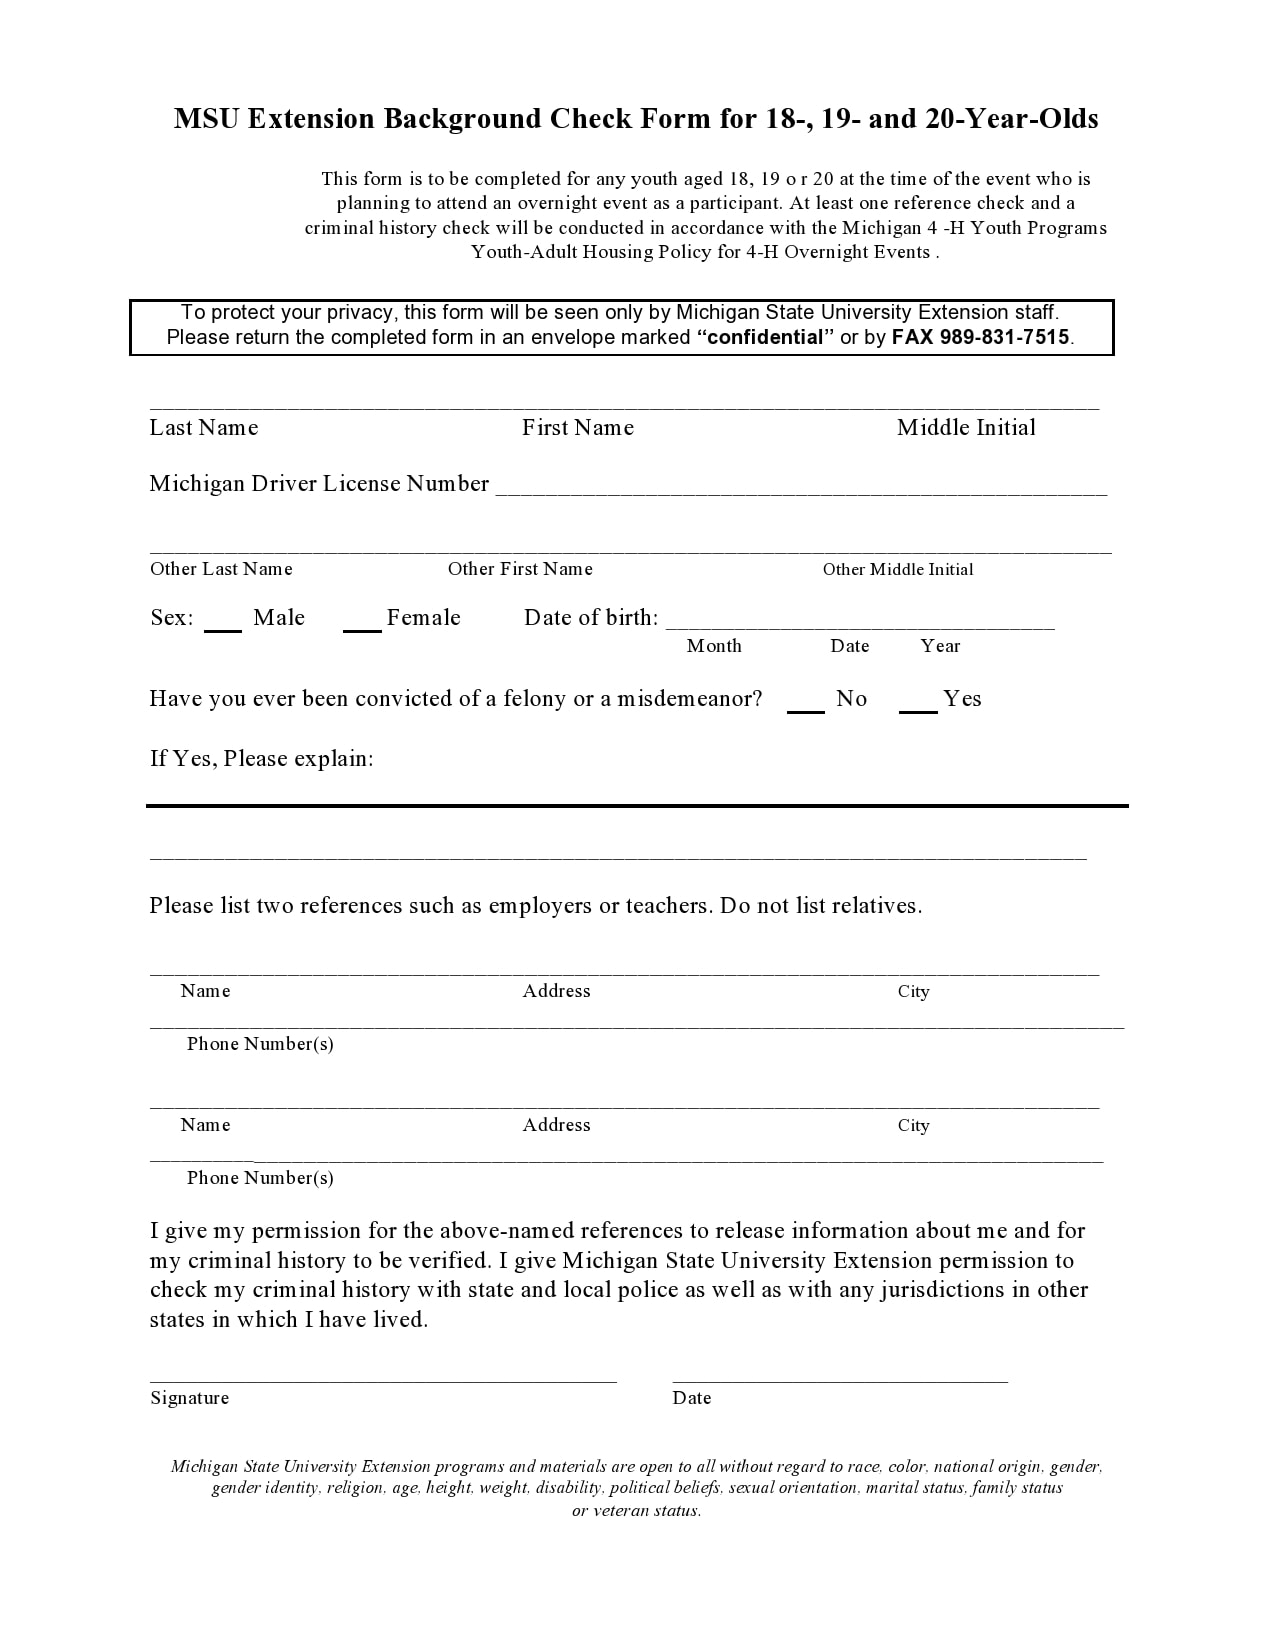 background check form 27